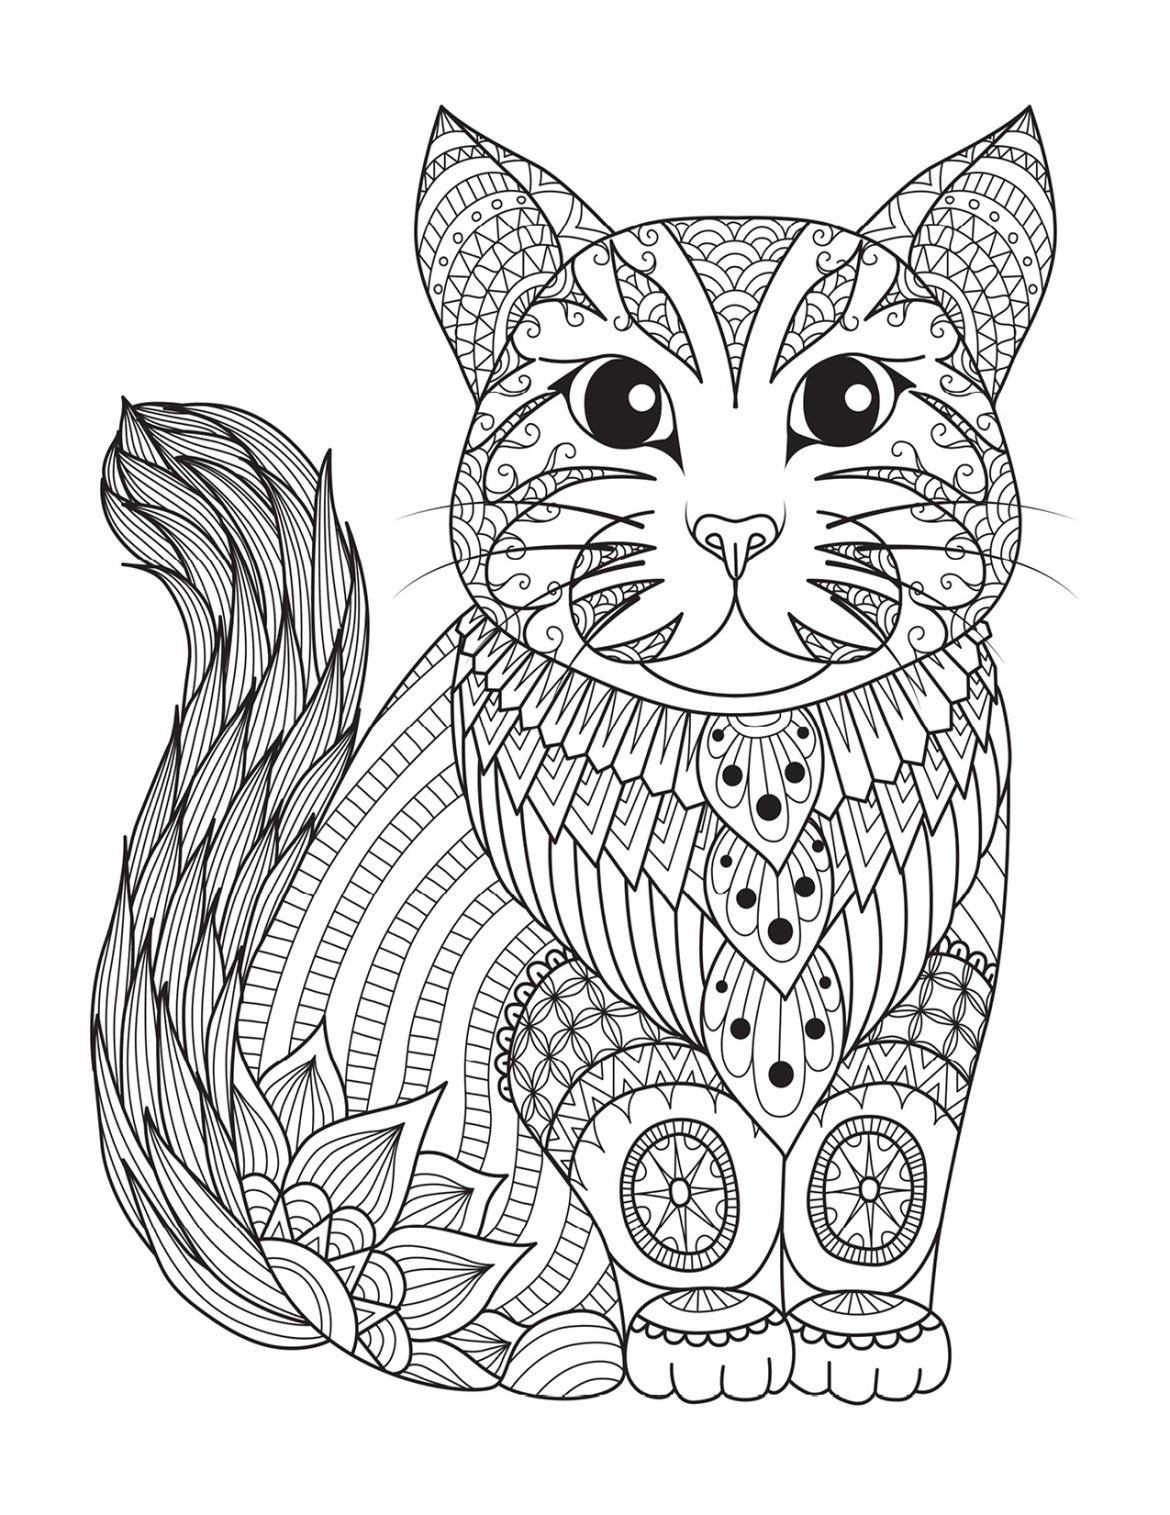 Chat coloriage pour adulte imprimer par bimbimkha - Chat a colorier adulte ...